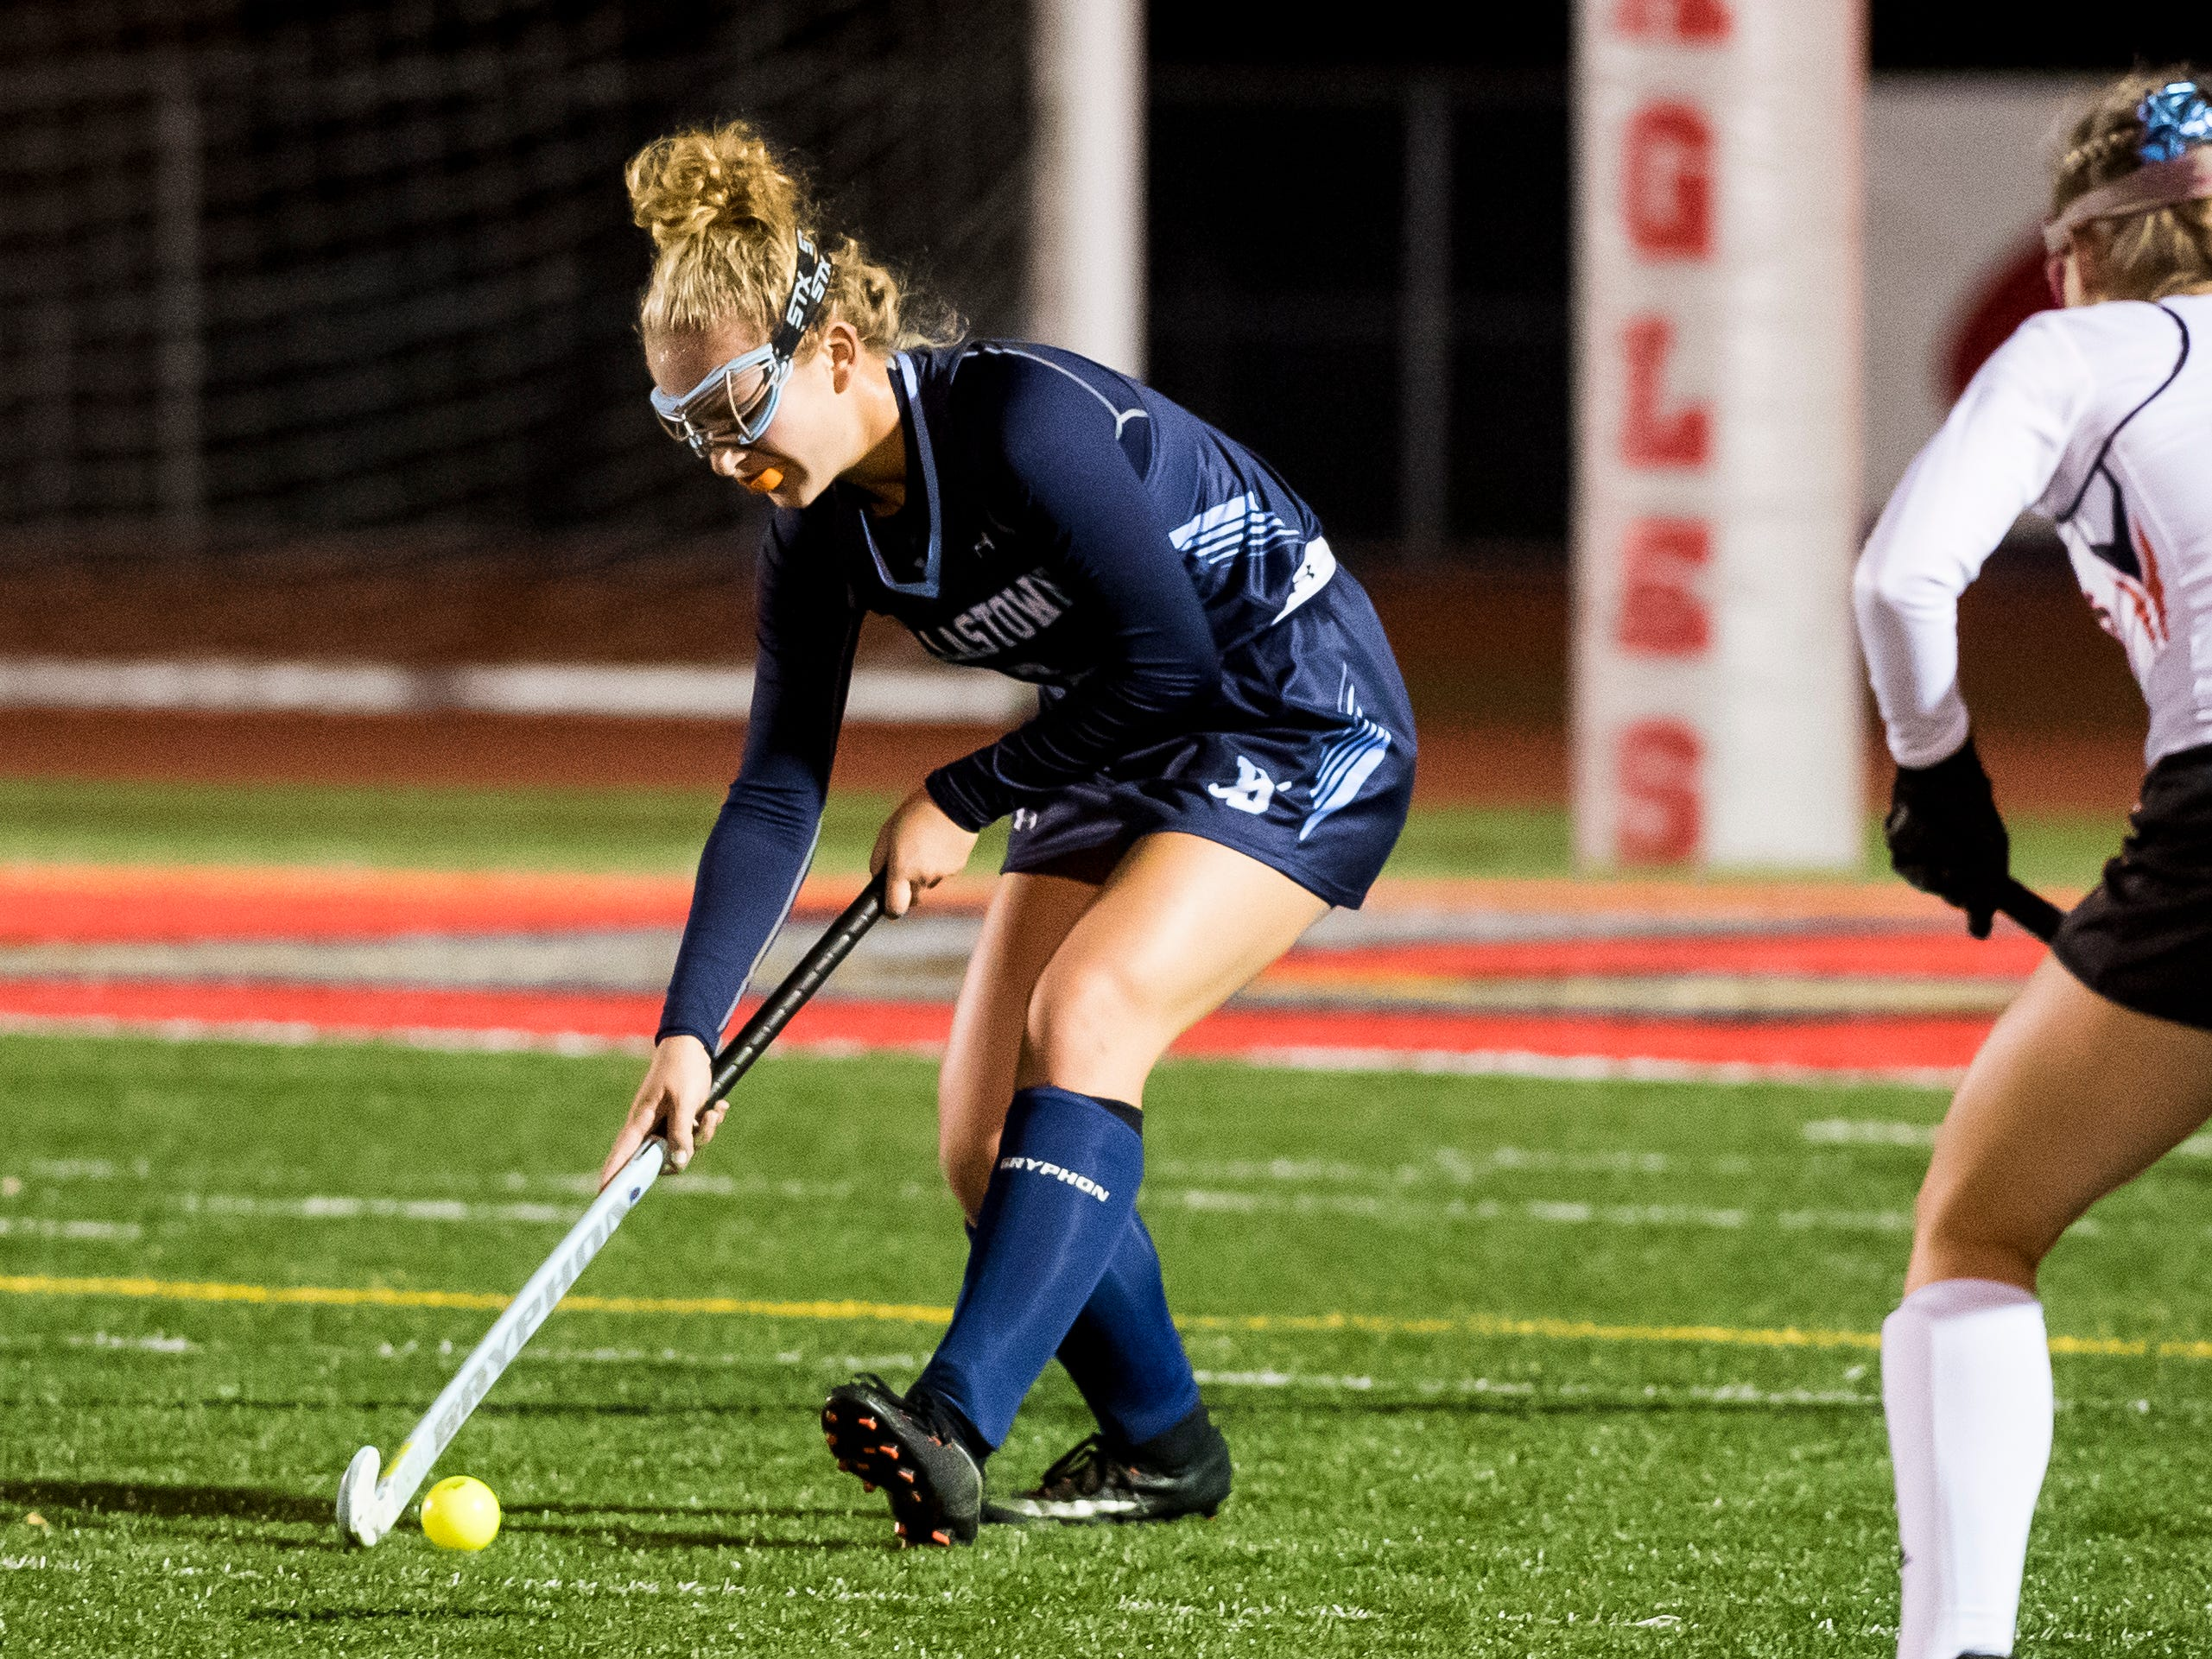 Dallastown's Natasha Milner works the ball down the field during play against Central York in a YAIAA tournament semifinal game on Thursday, October 18, 2018. The Wildcats fell 2-0.